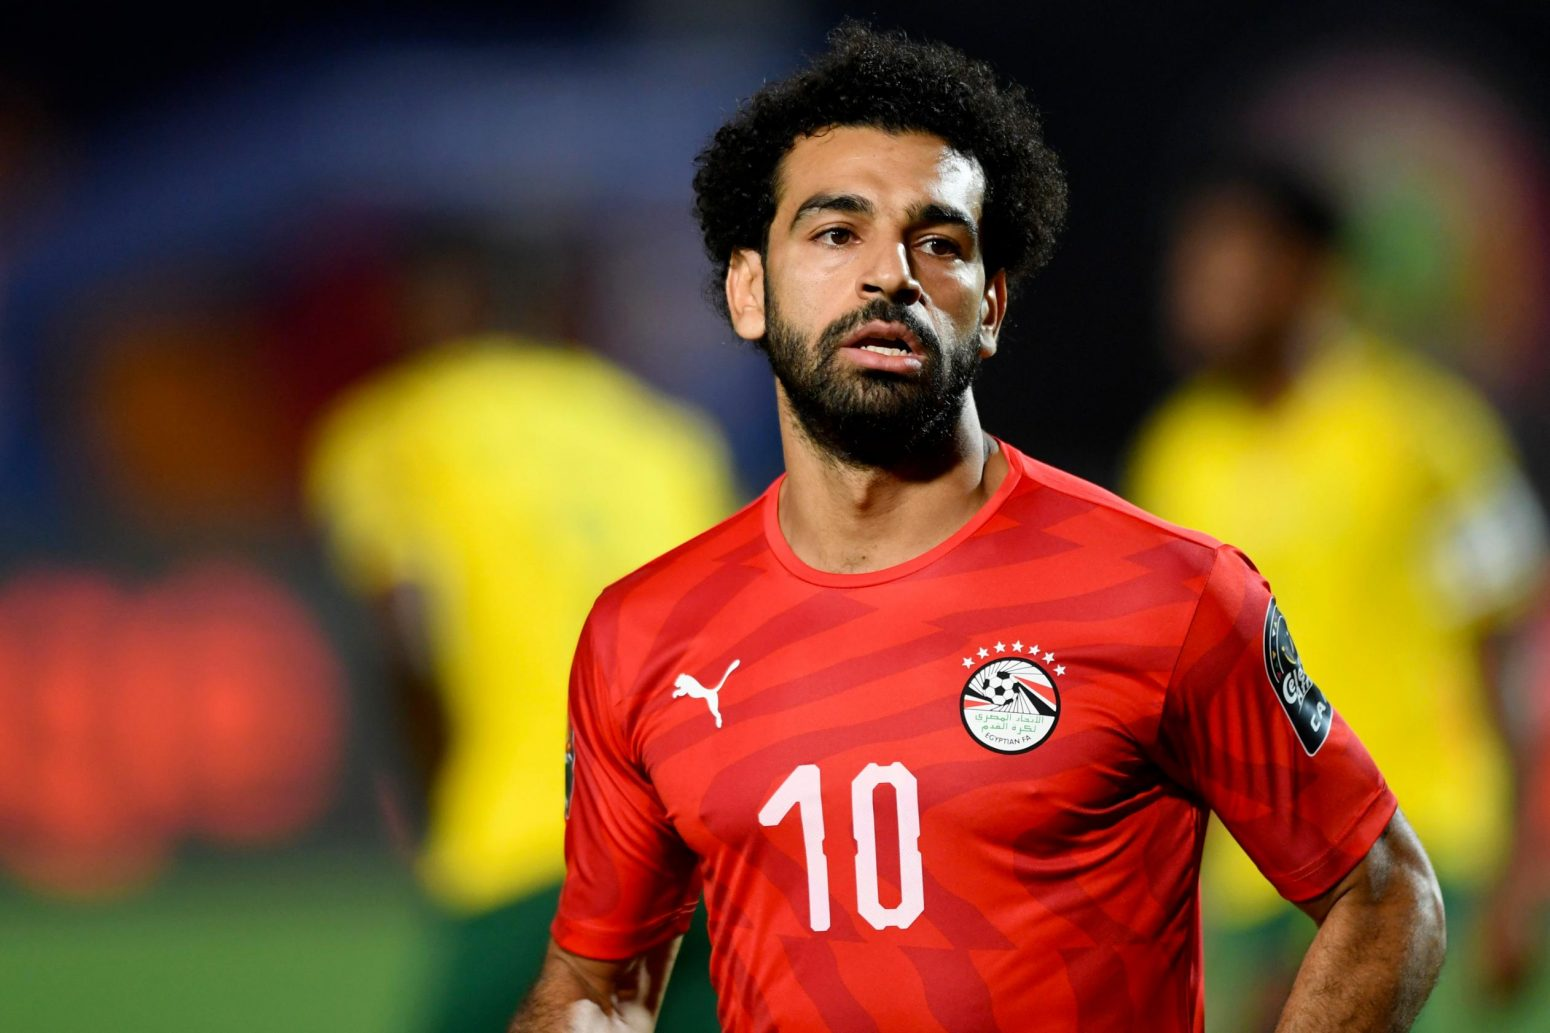 """We can't force him"" – Egypt boss on his plans to include Mohamed Salah in Olympics squad"